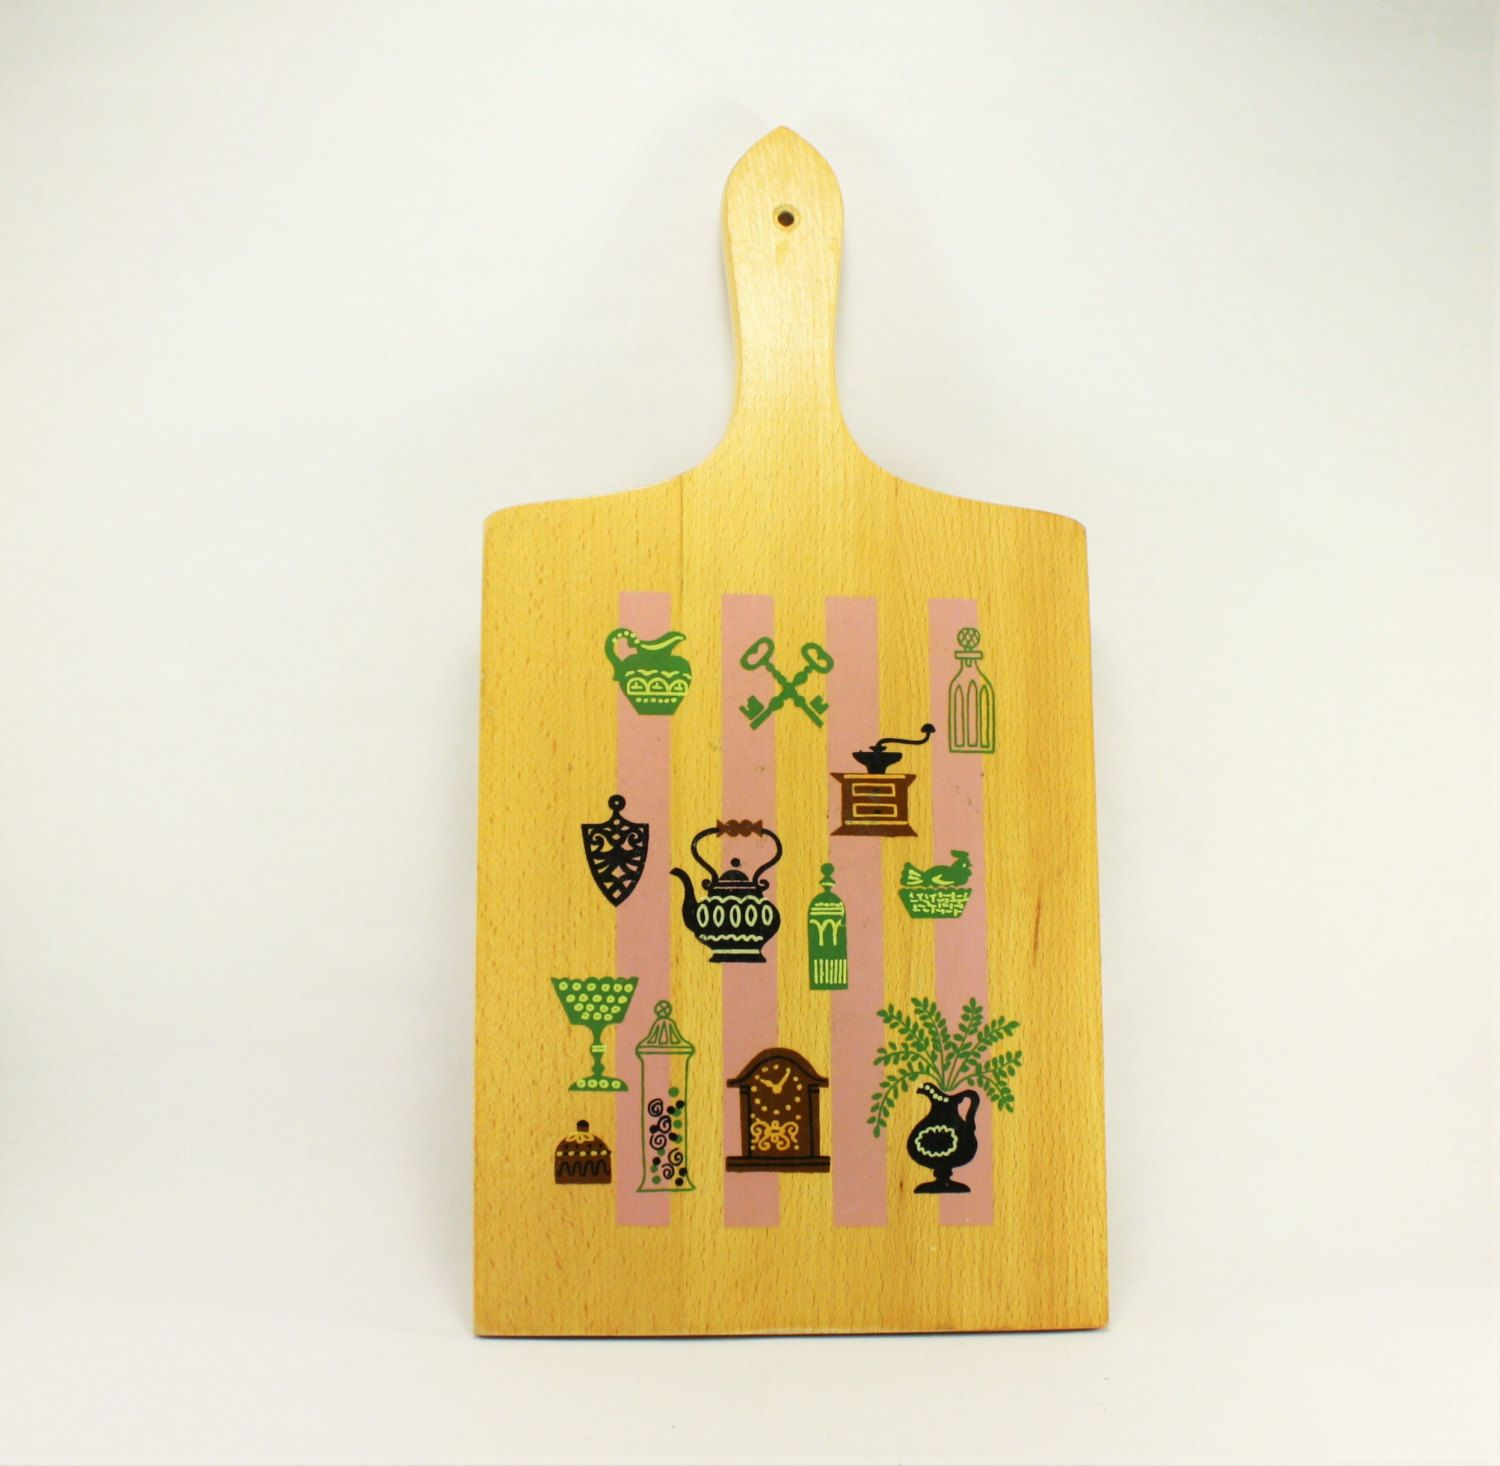 Vintage Kitchen Wall Decor Cutting Board, Vintage Wall Hanging ...